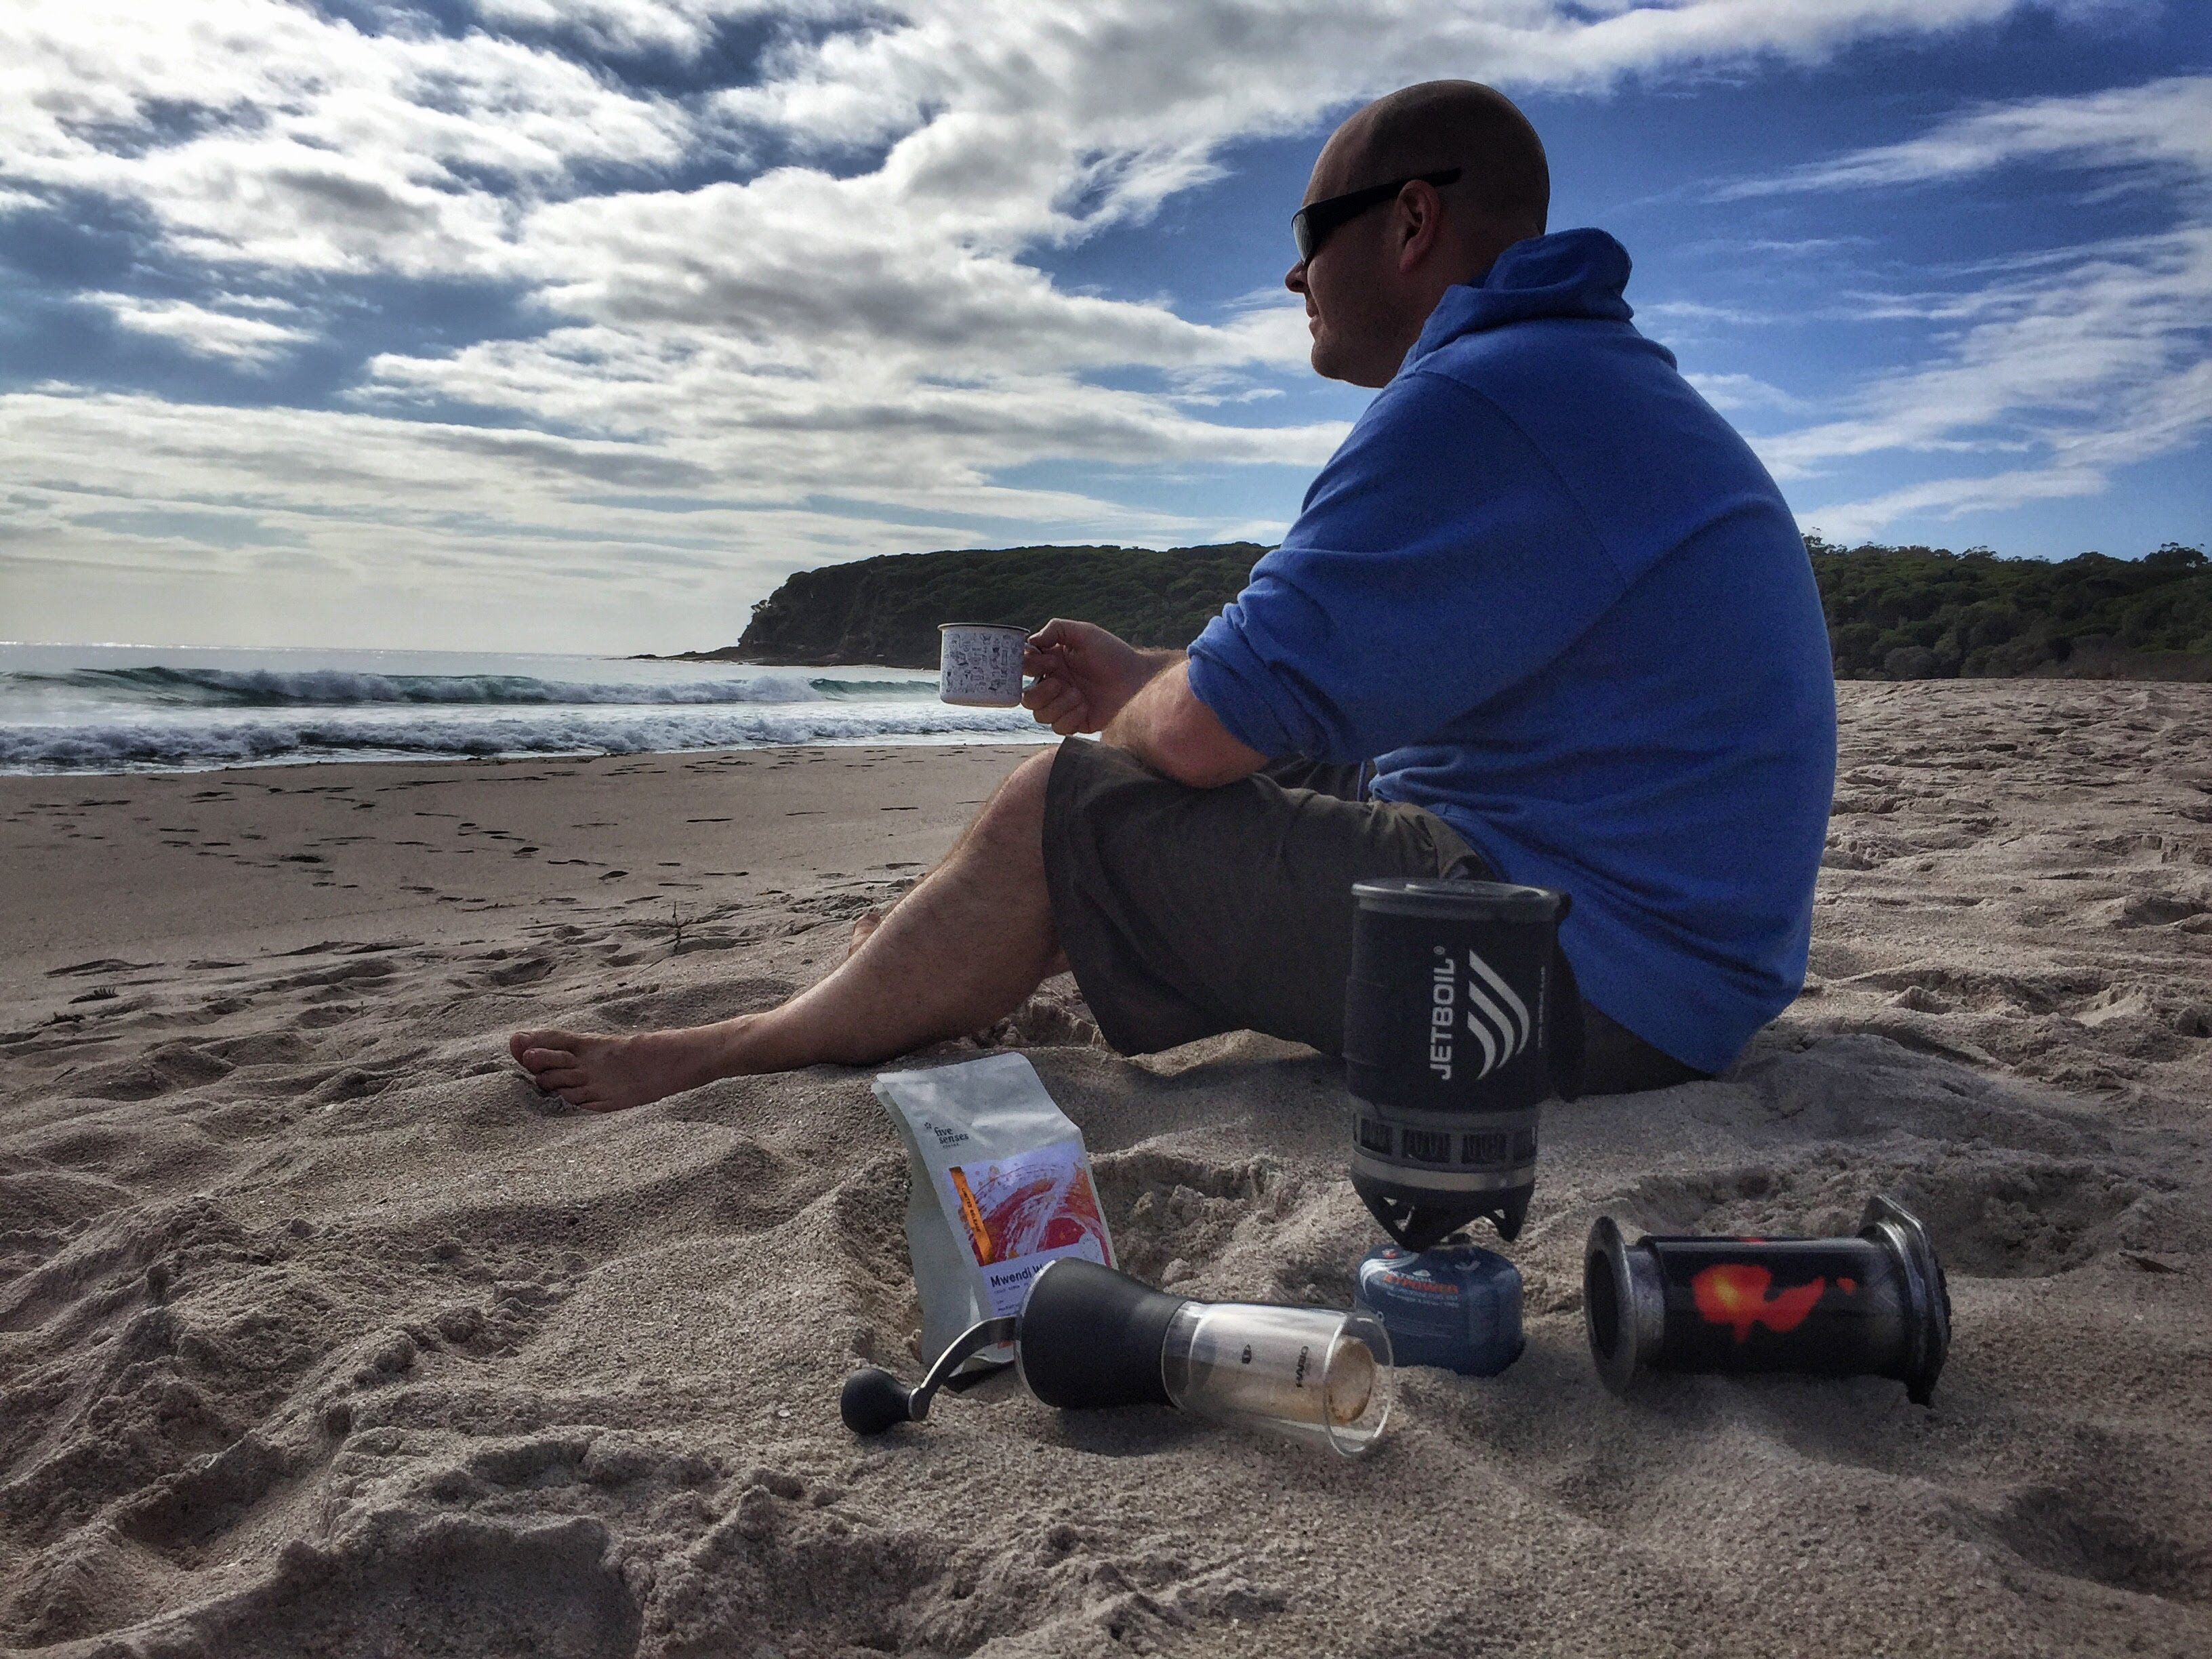 Drinking Good Coffee While Hiking on a Beach